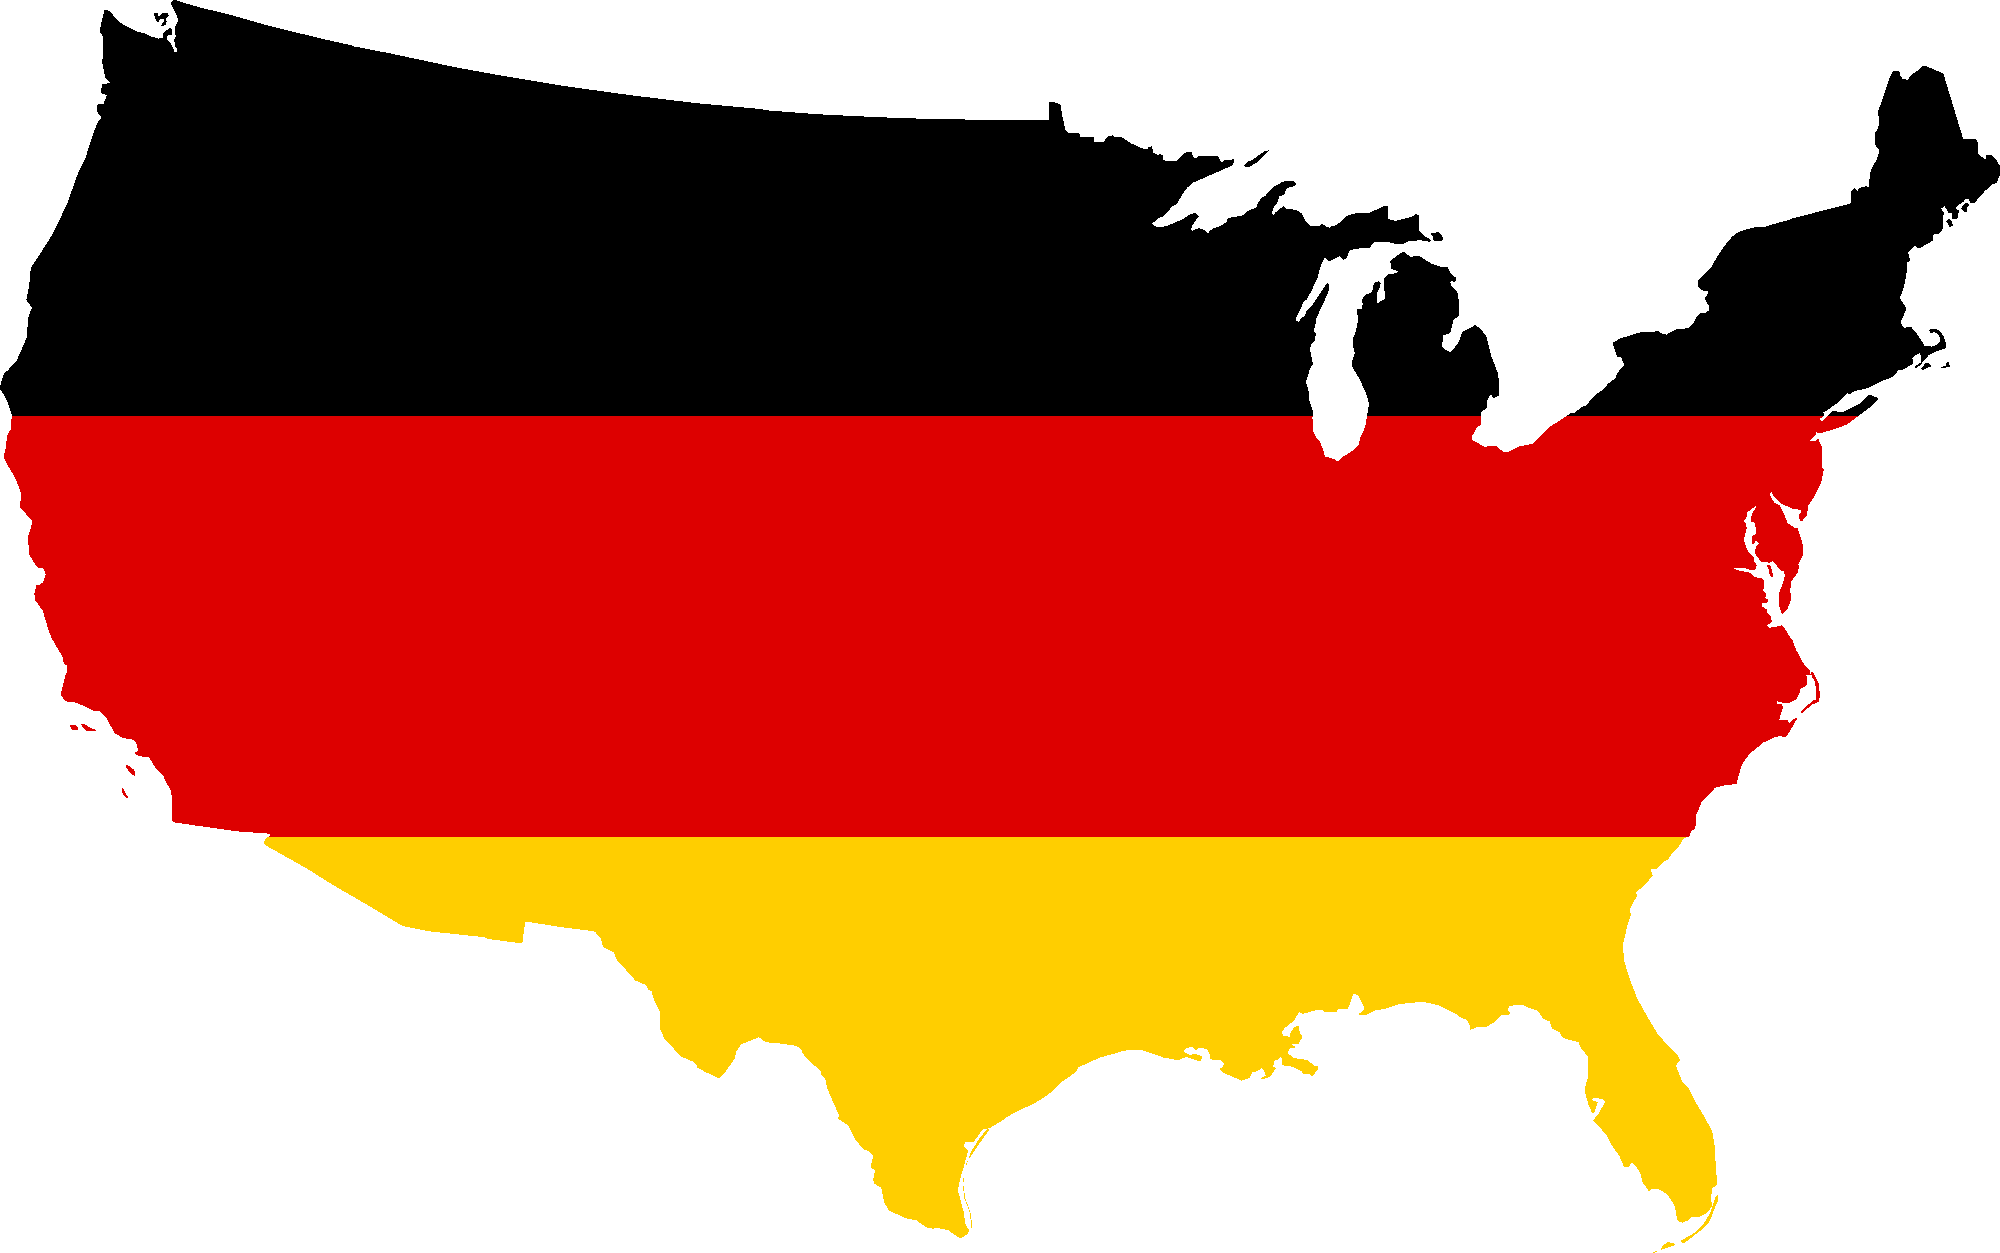 German flag png. File map of the